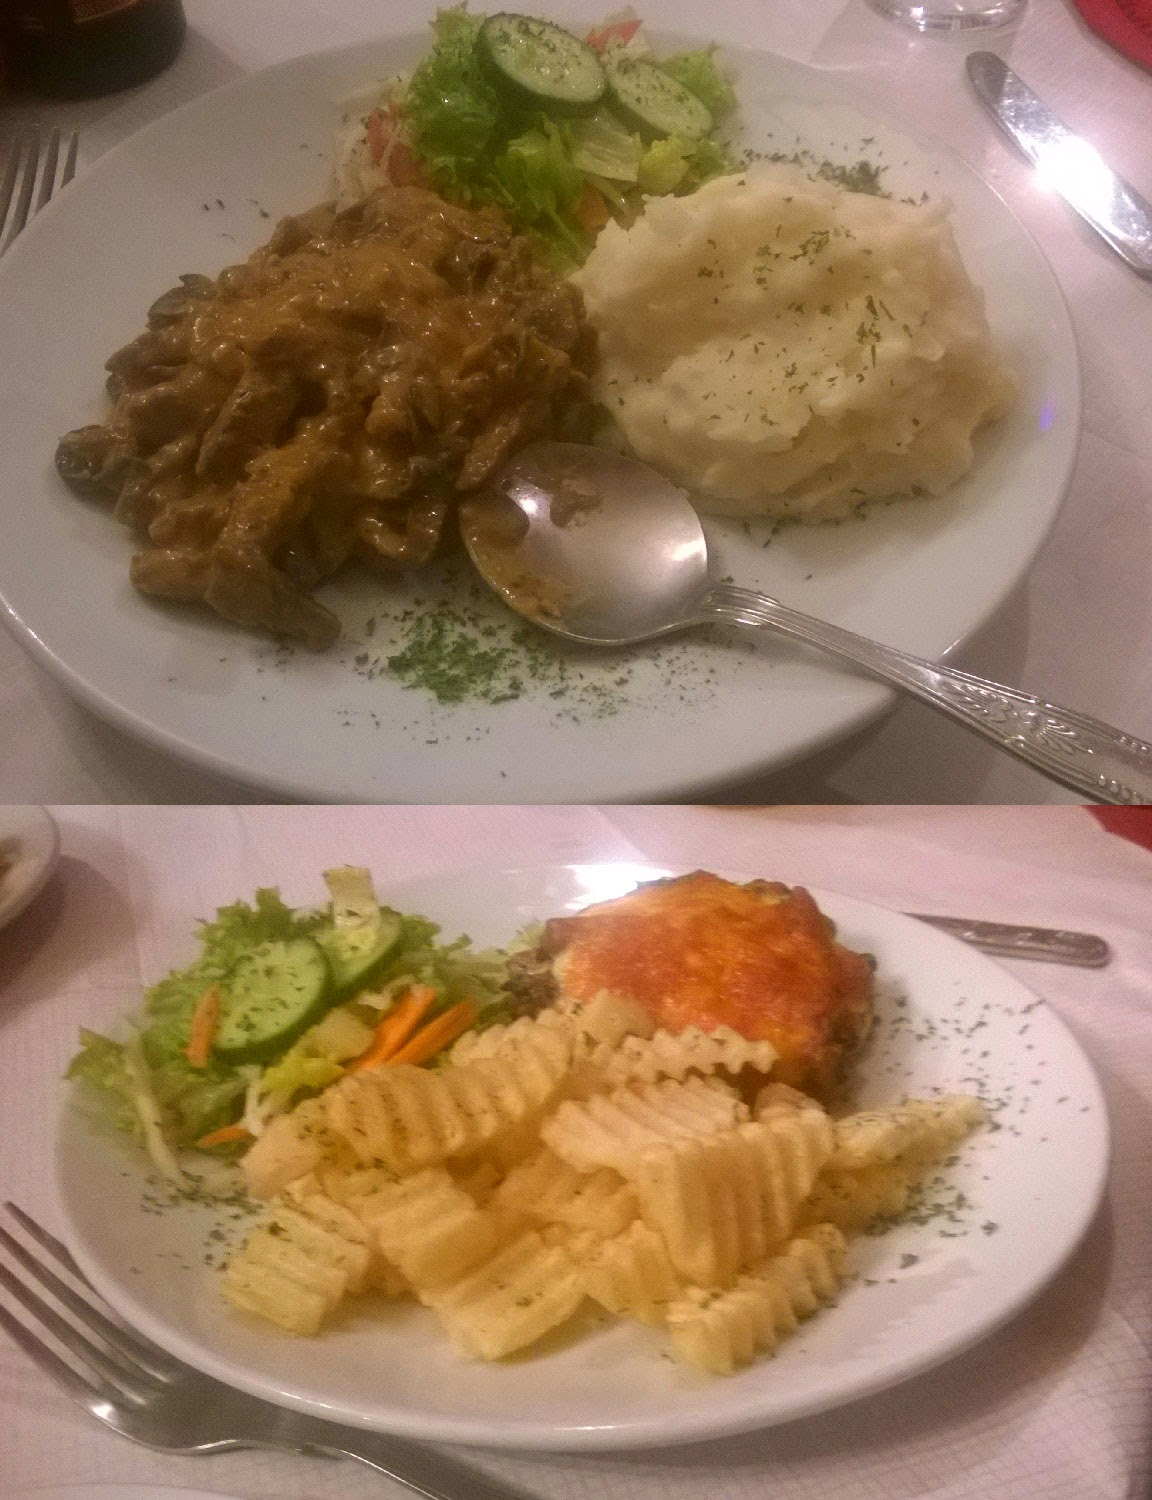 My dinner and hers at the Russian place